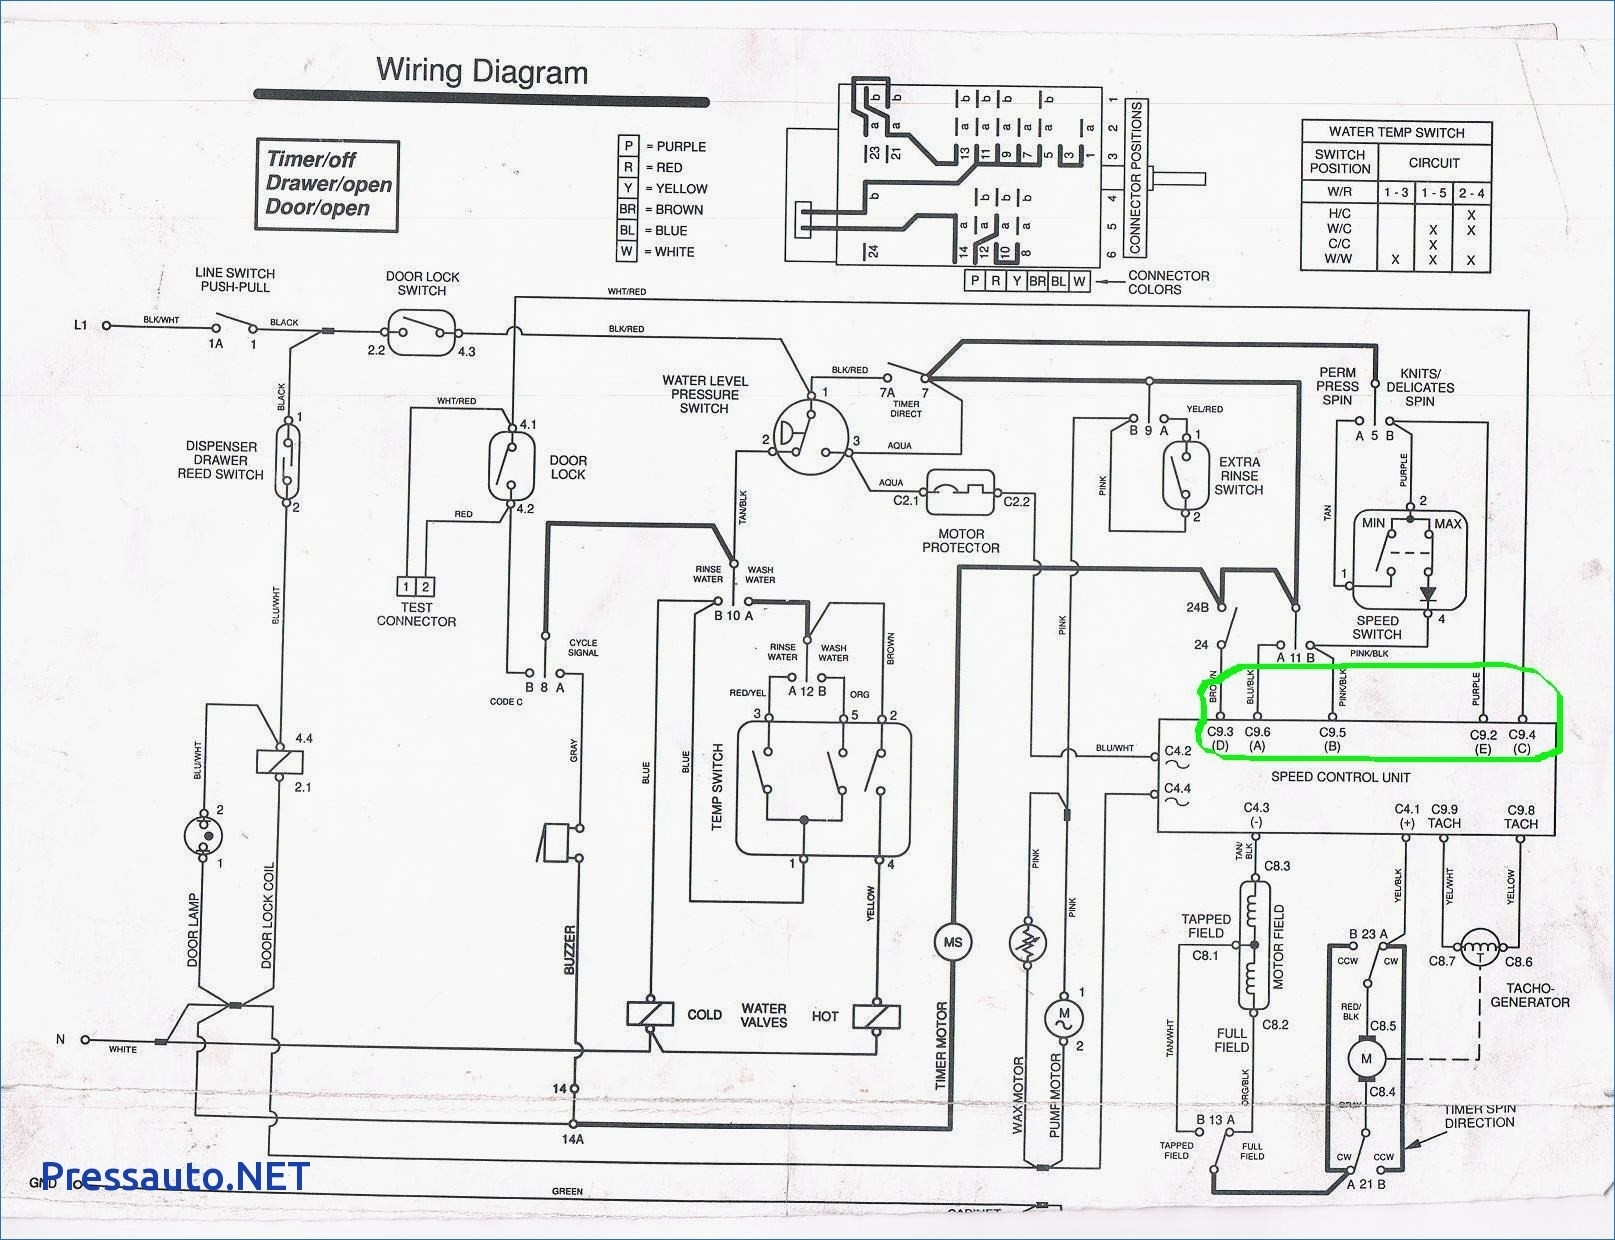 Maytag Duet Dryer Wiring Diagram | Wiring Diagram on